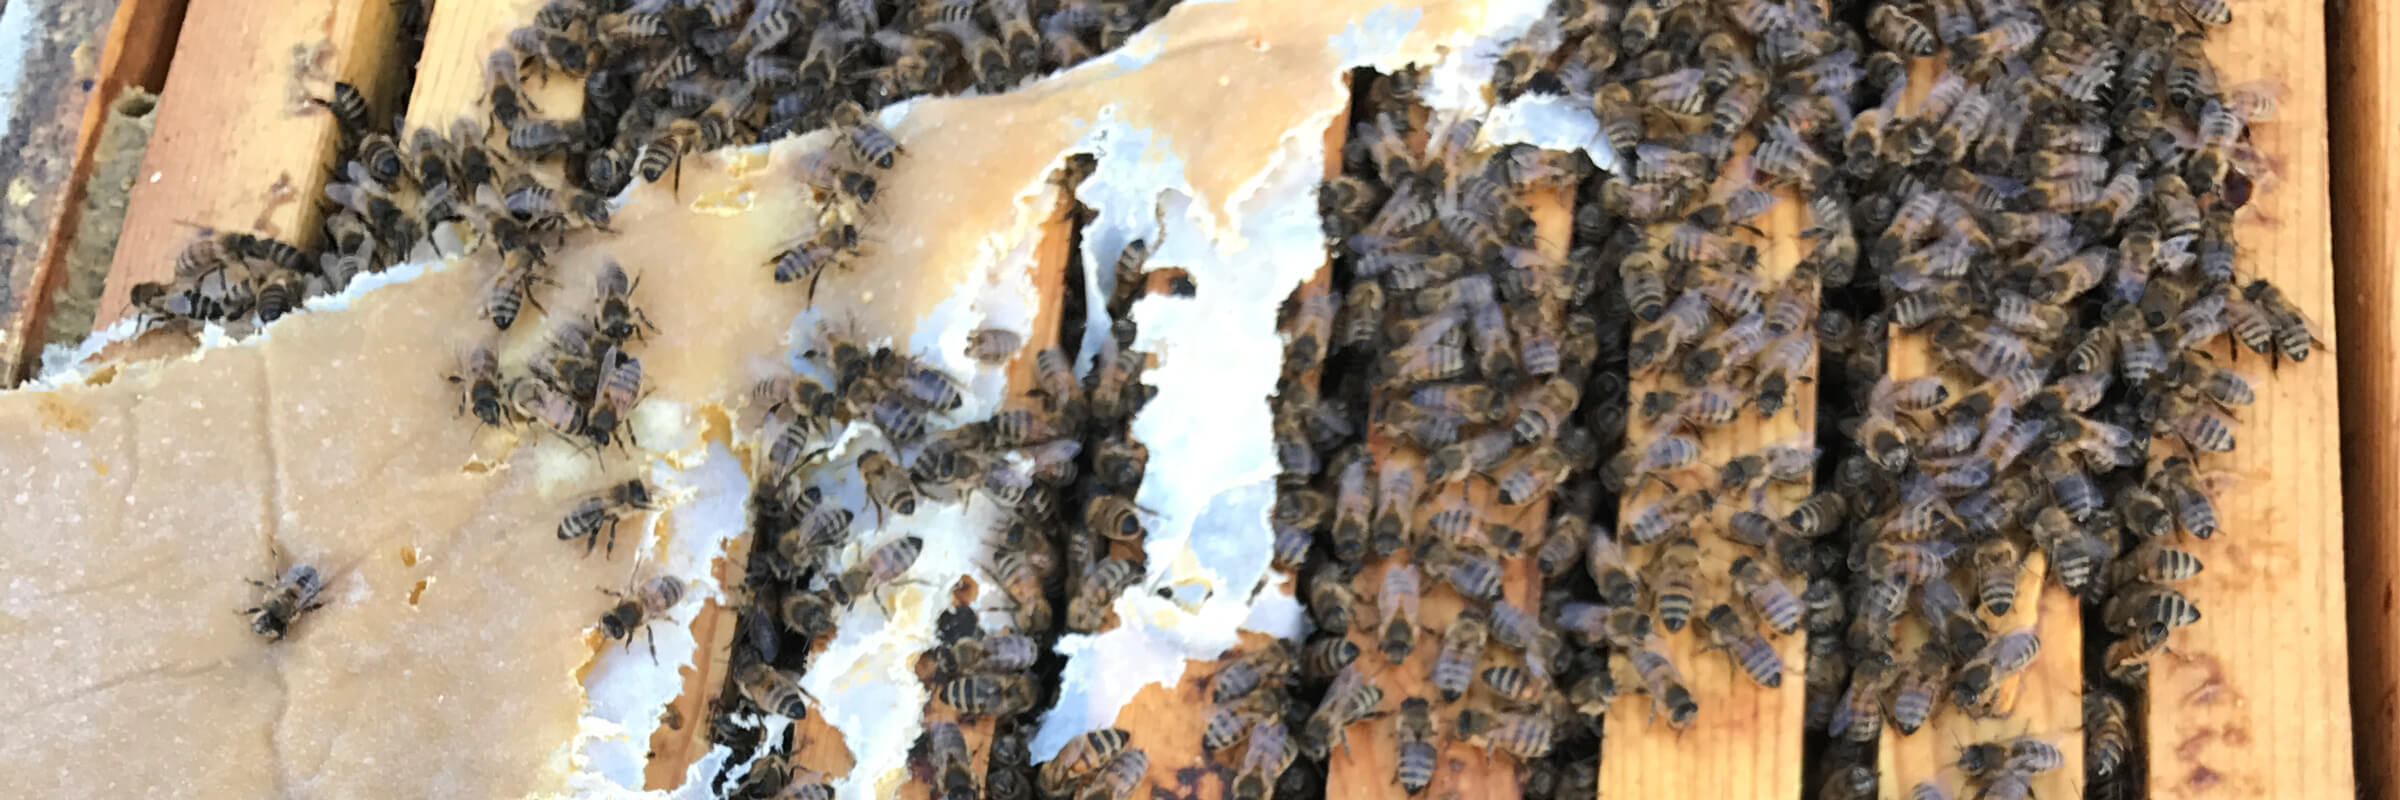 Feeding a bee hive protein patties to avoid starvation and other spring mistakes